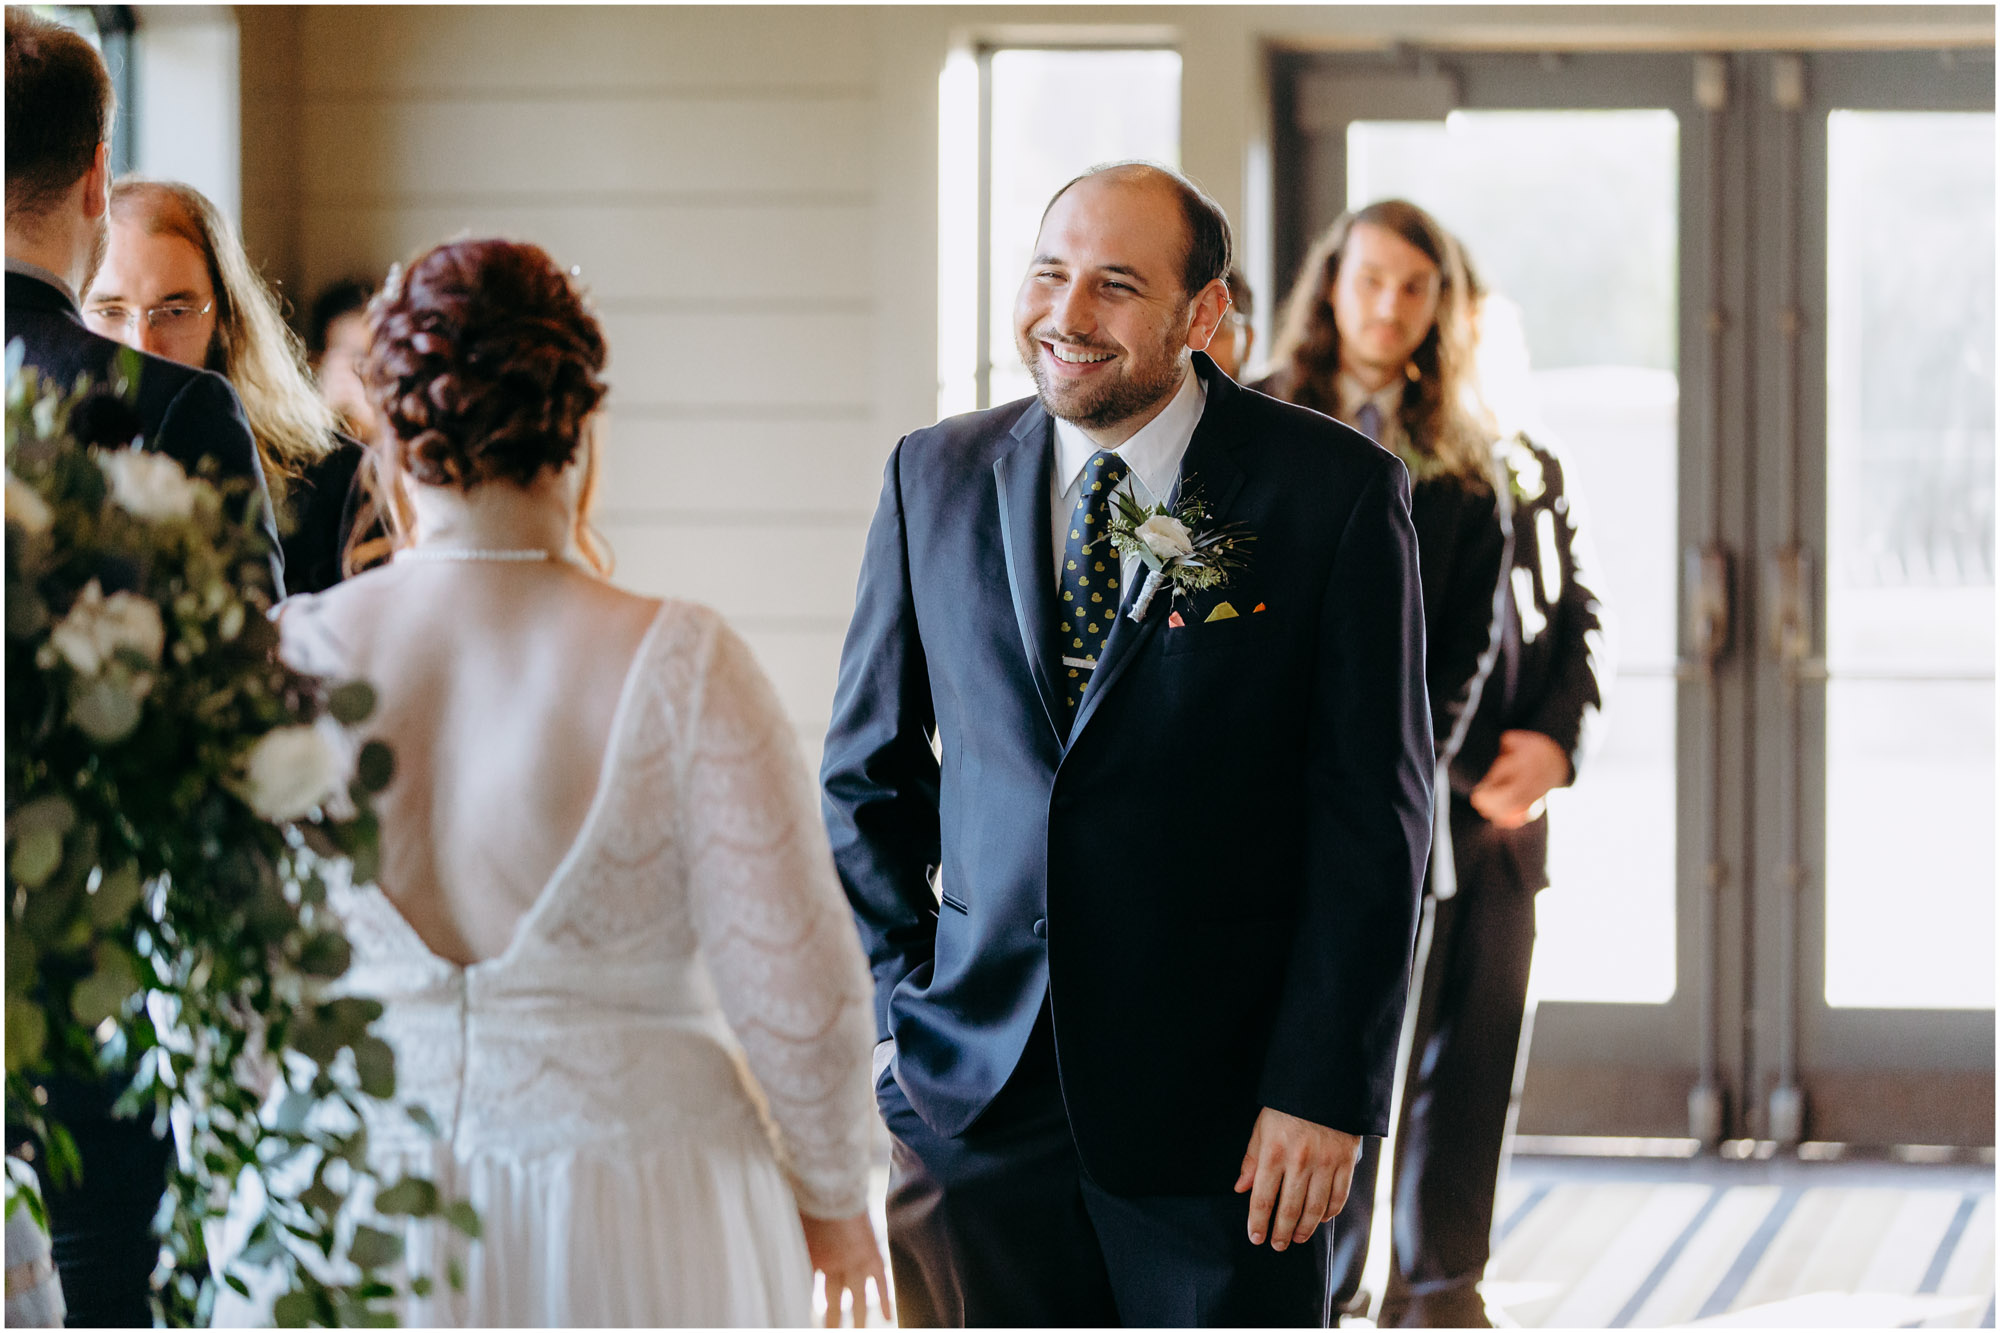 Smiling groom during ceremony - by Ashleigh Laureen Photography at LaBelle Winery in Amherst, New Hampshire